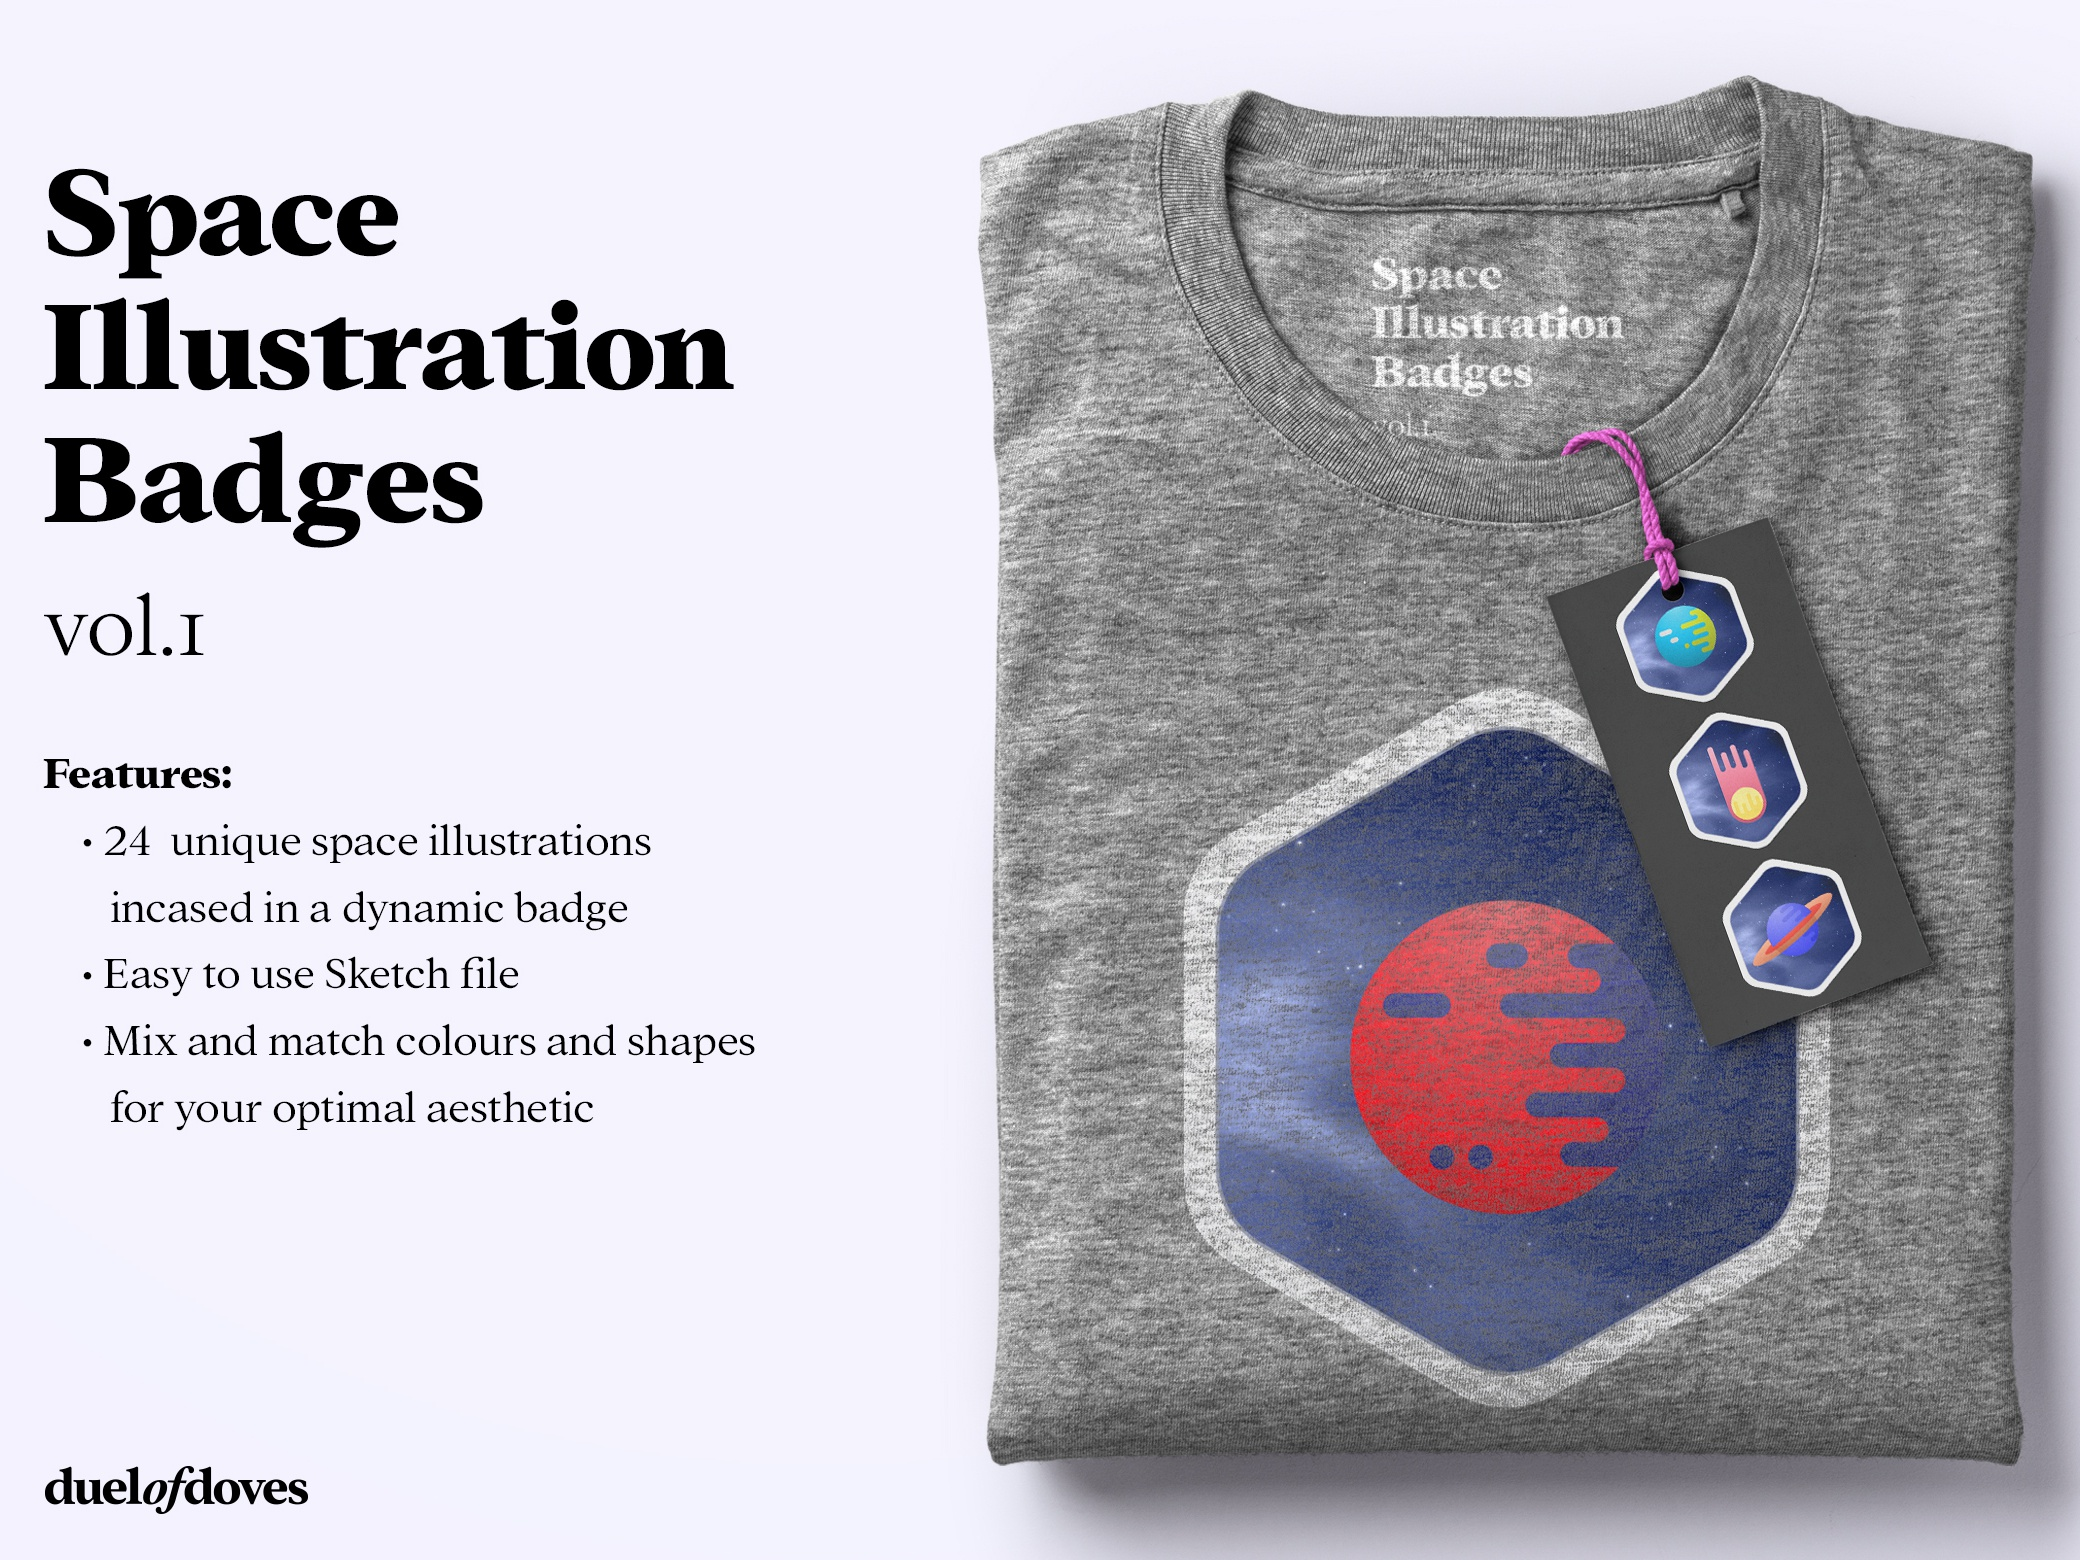 24 Space illustration badges